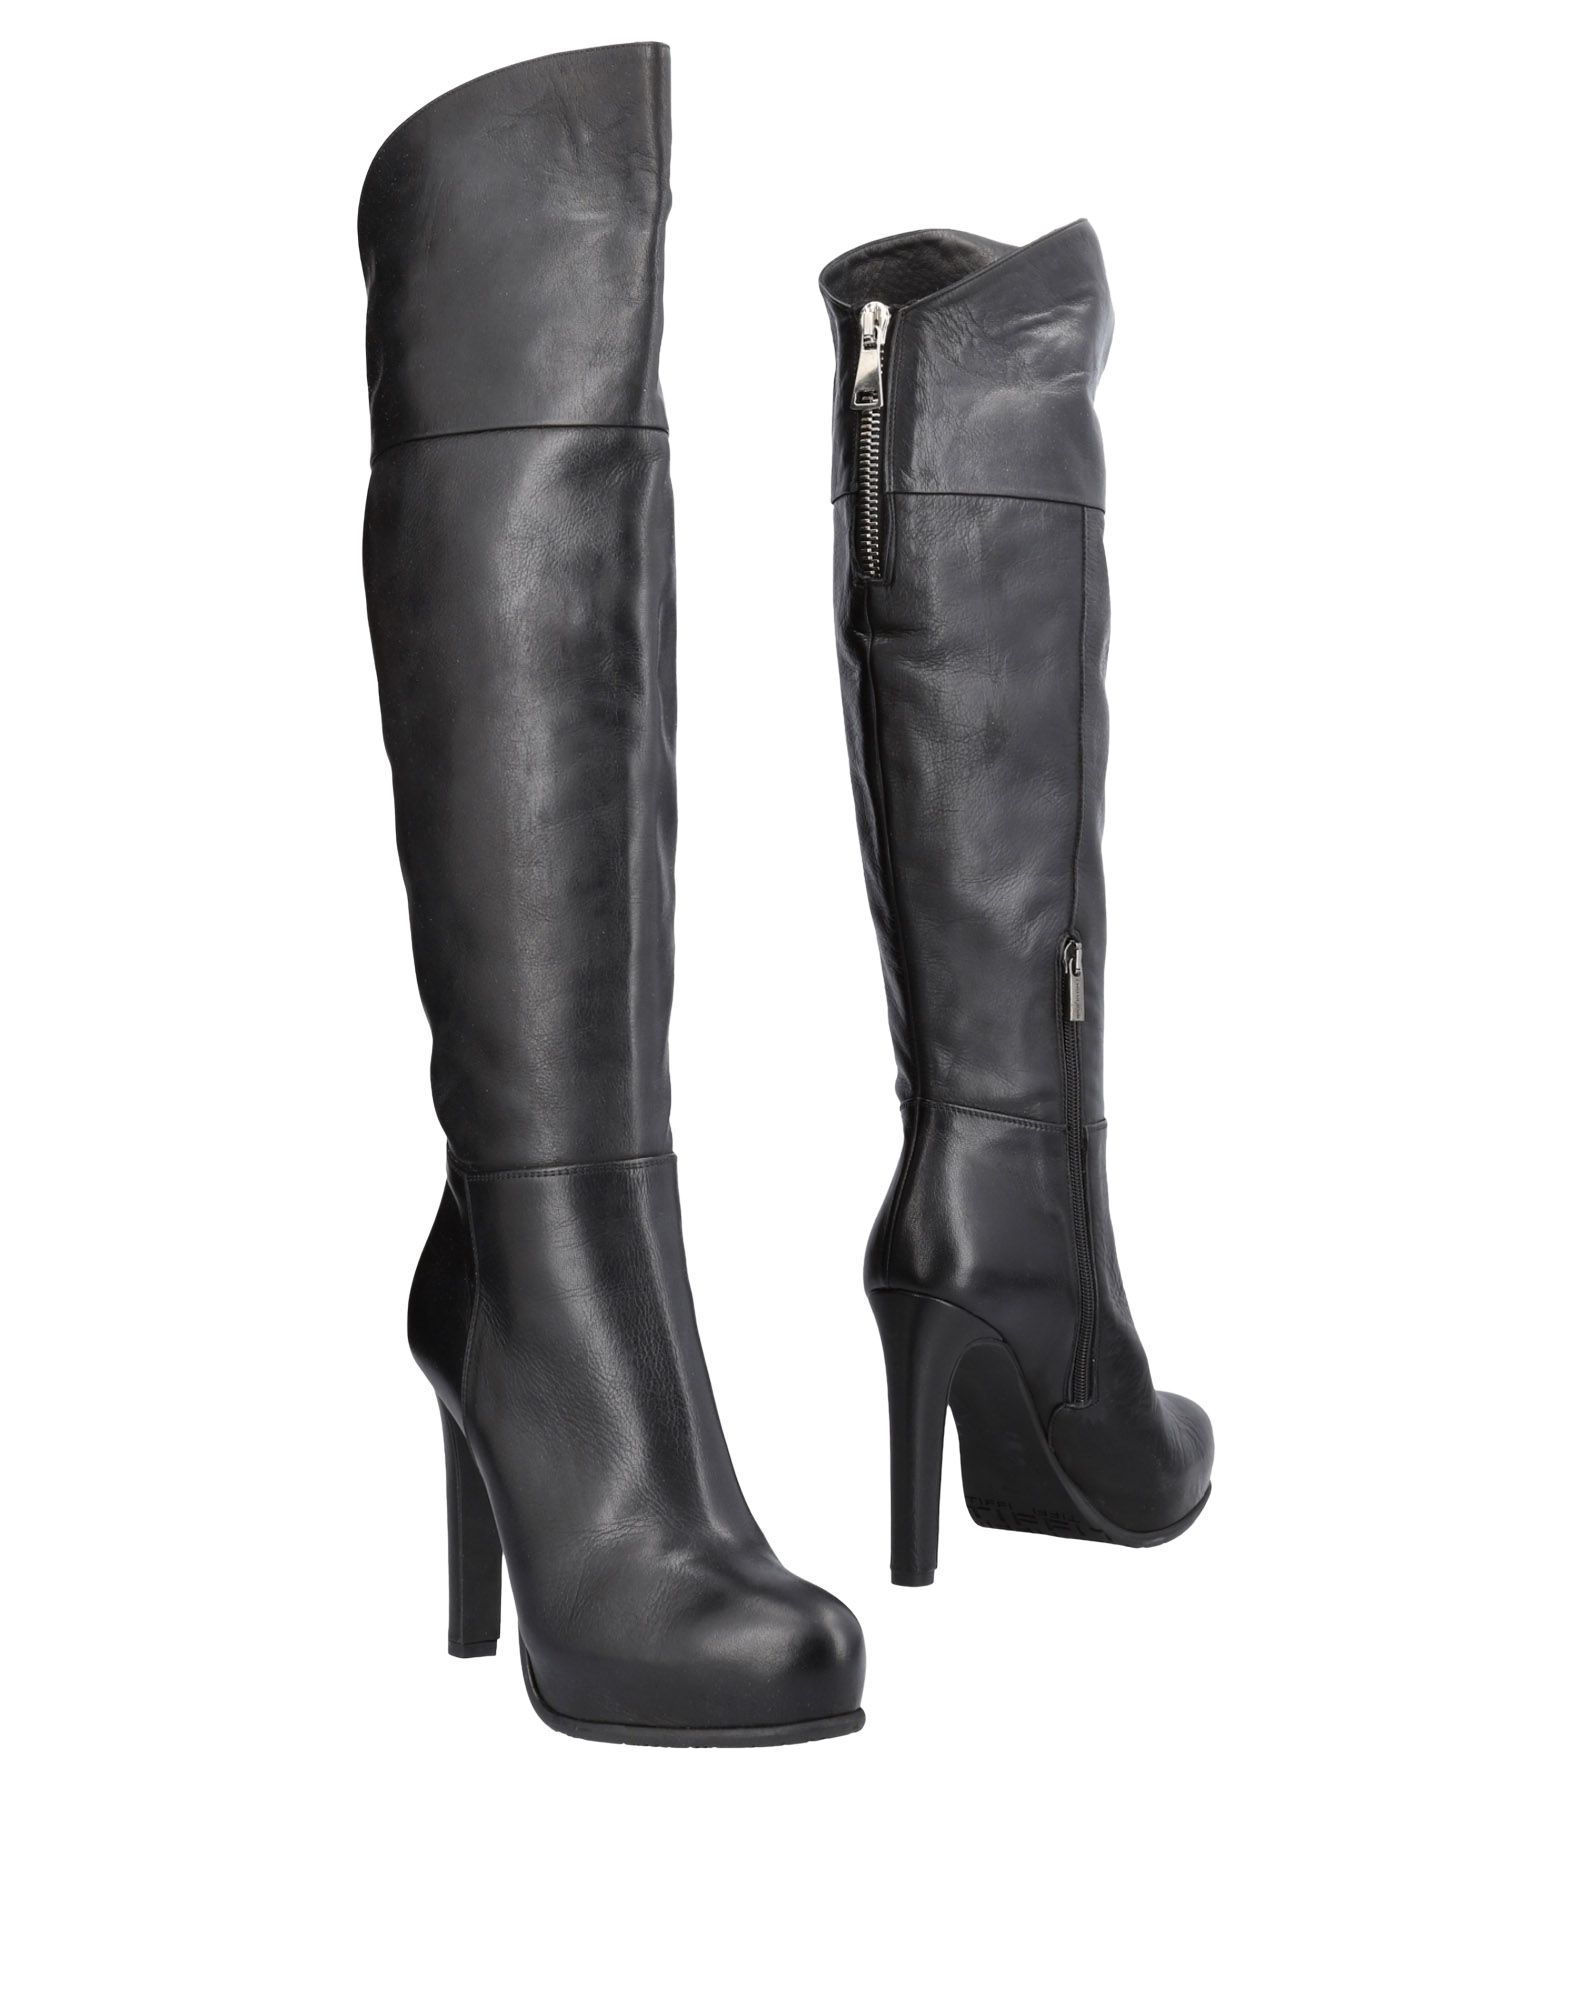 Pavin on Boots - Women Pavin Boots online on Pavin  Australia - 11484801IW 7a24cc